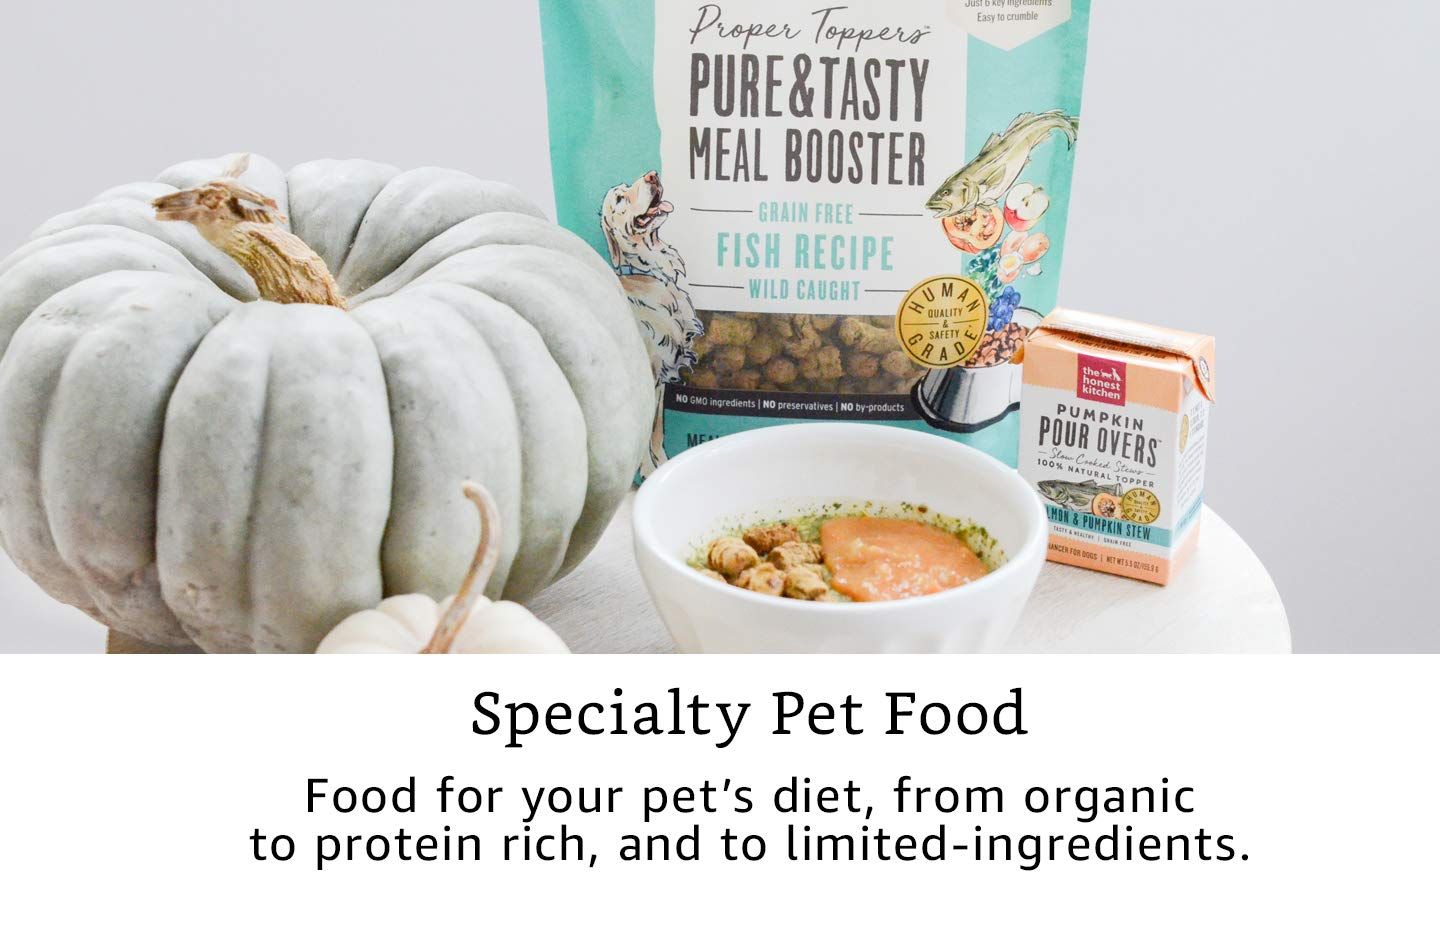 Specialty Pet Food